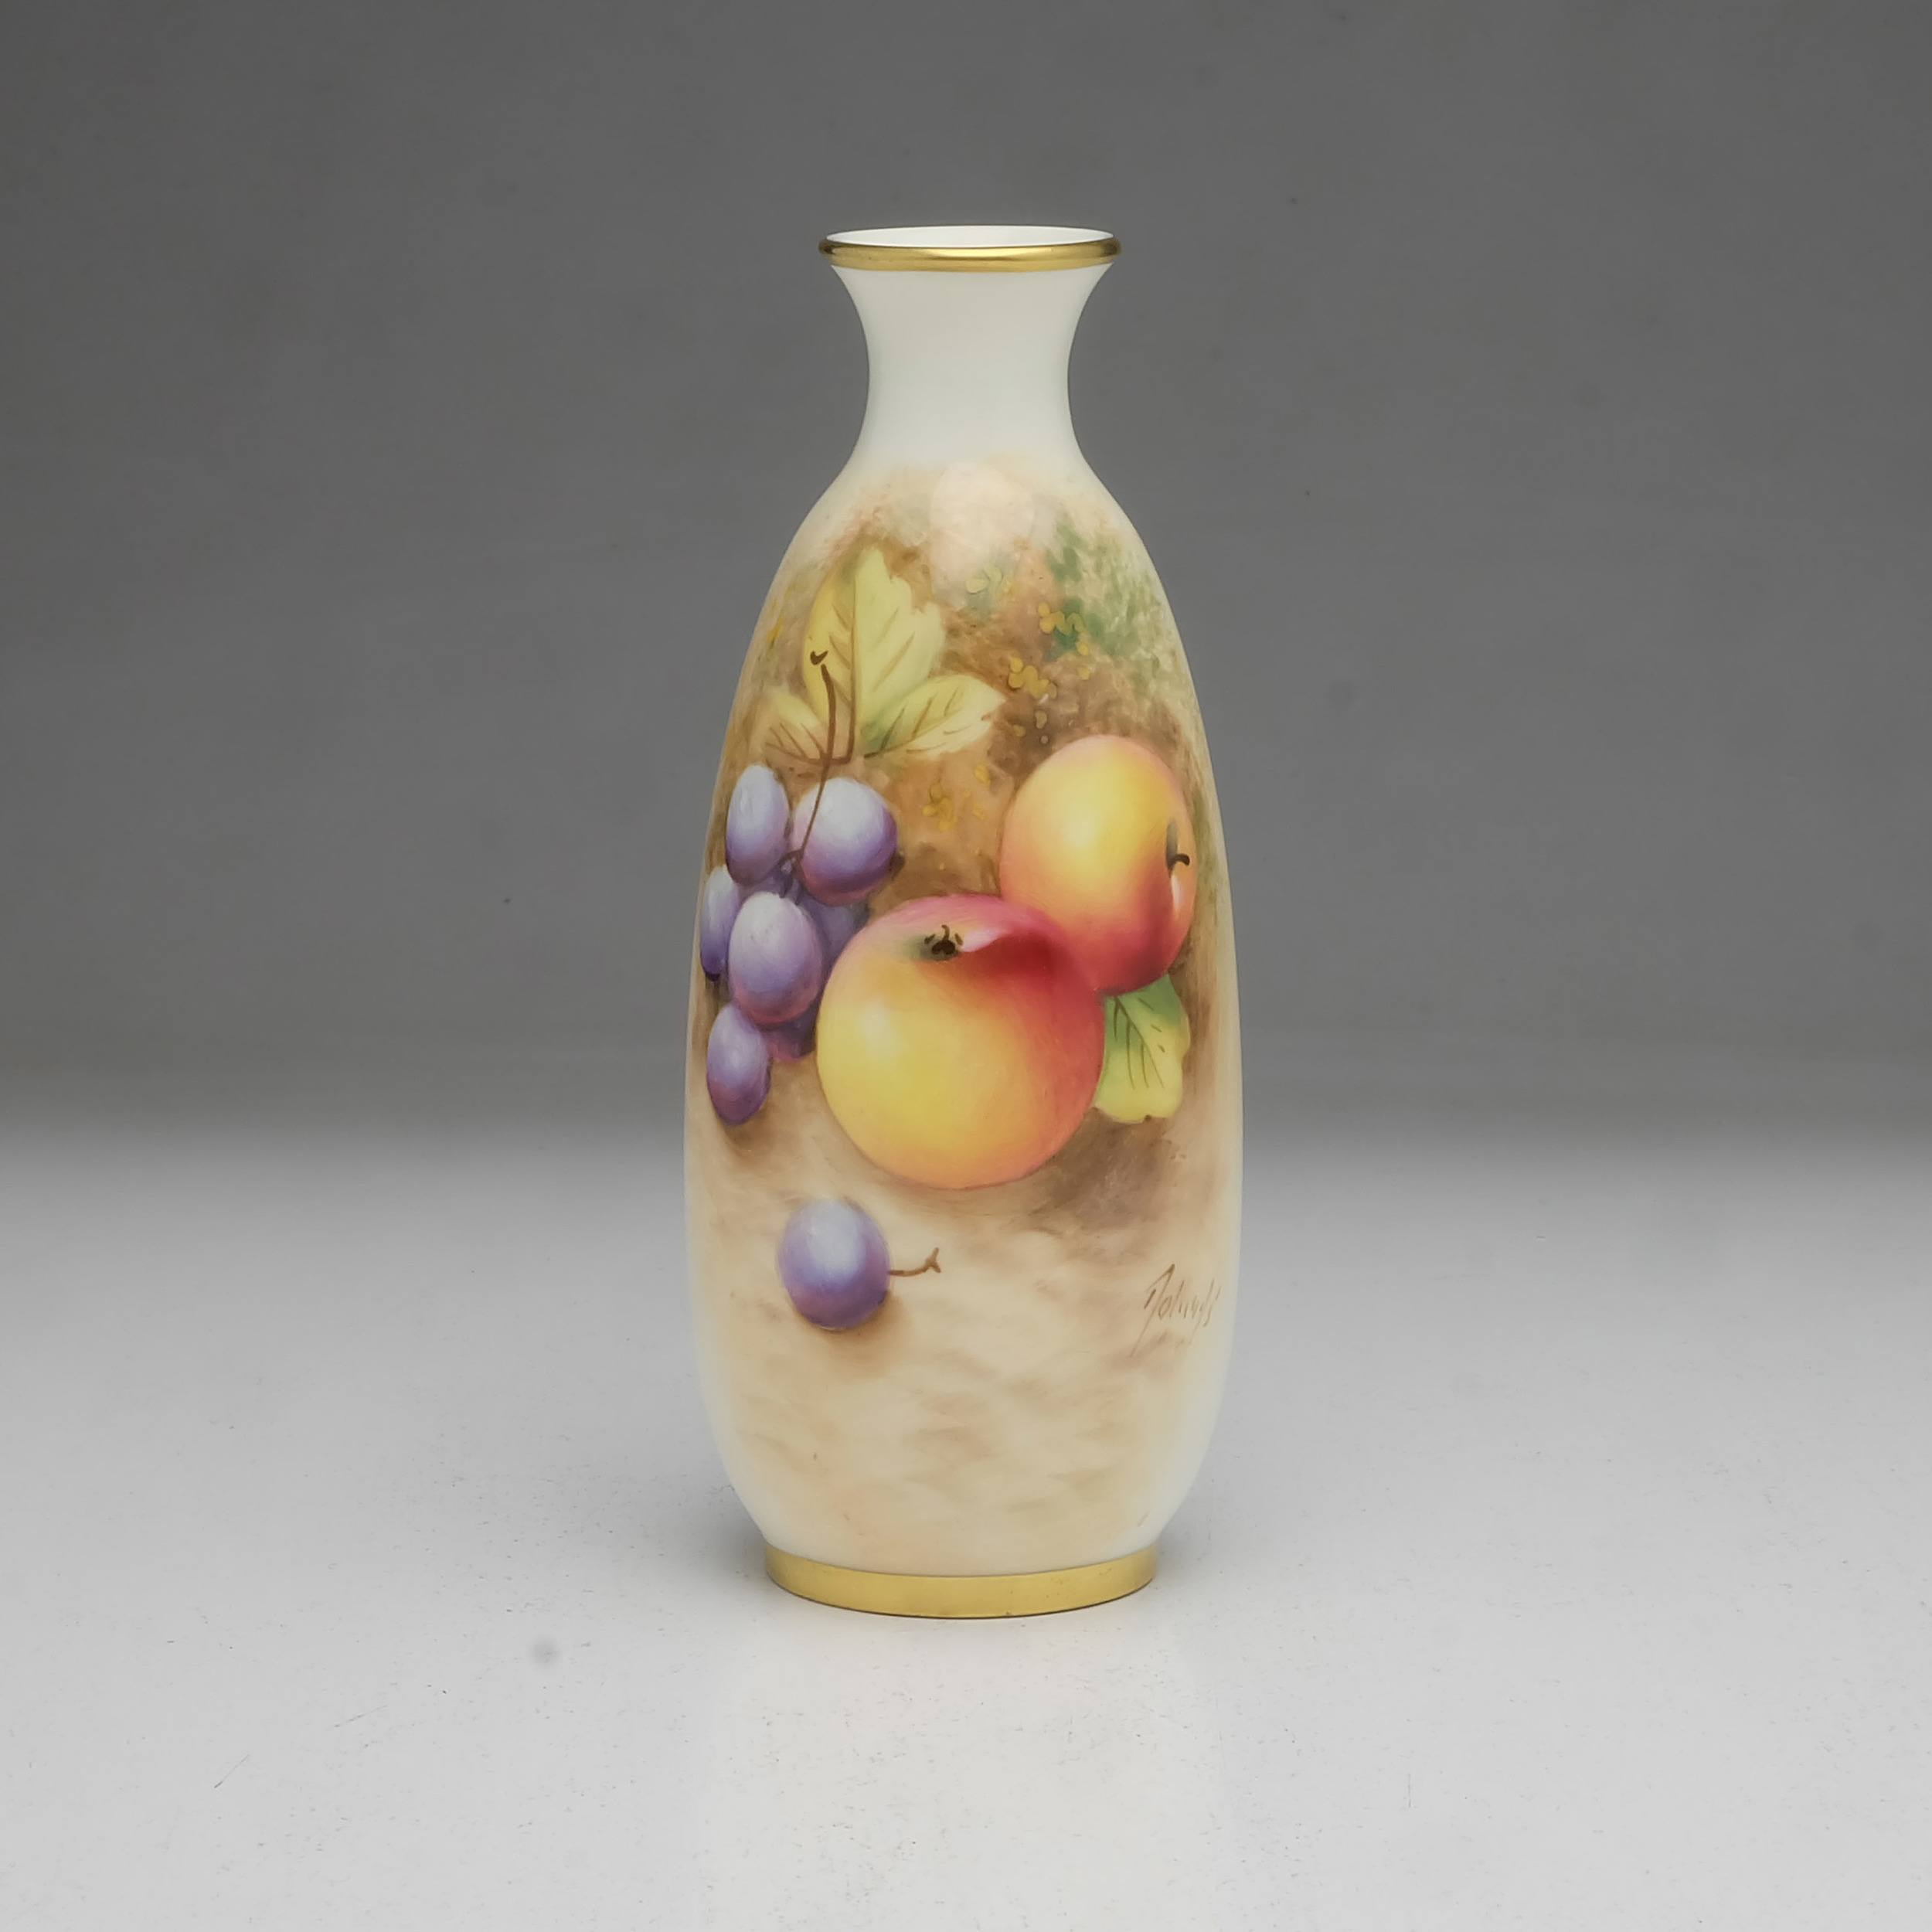 'Frank Roberts Hand Painted Royal Worcester Vase with Apples and Plums, 2491'